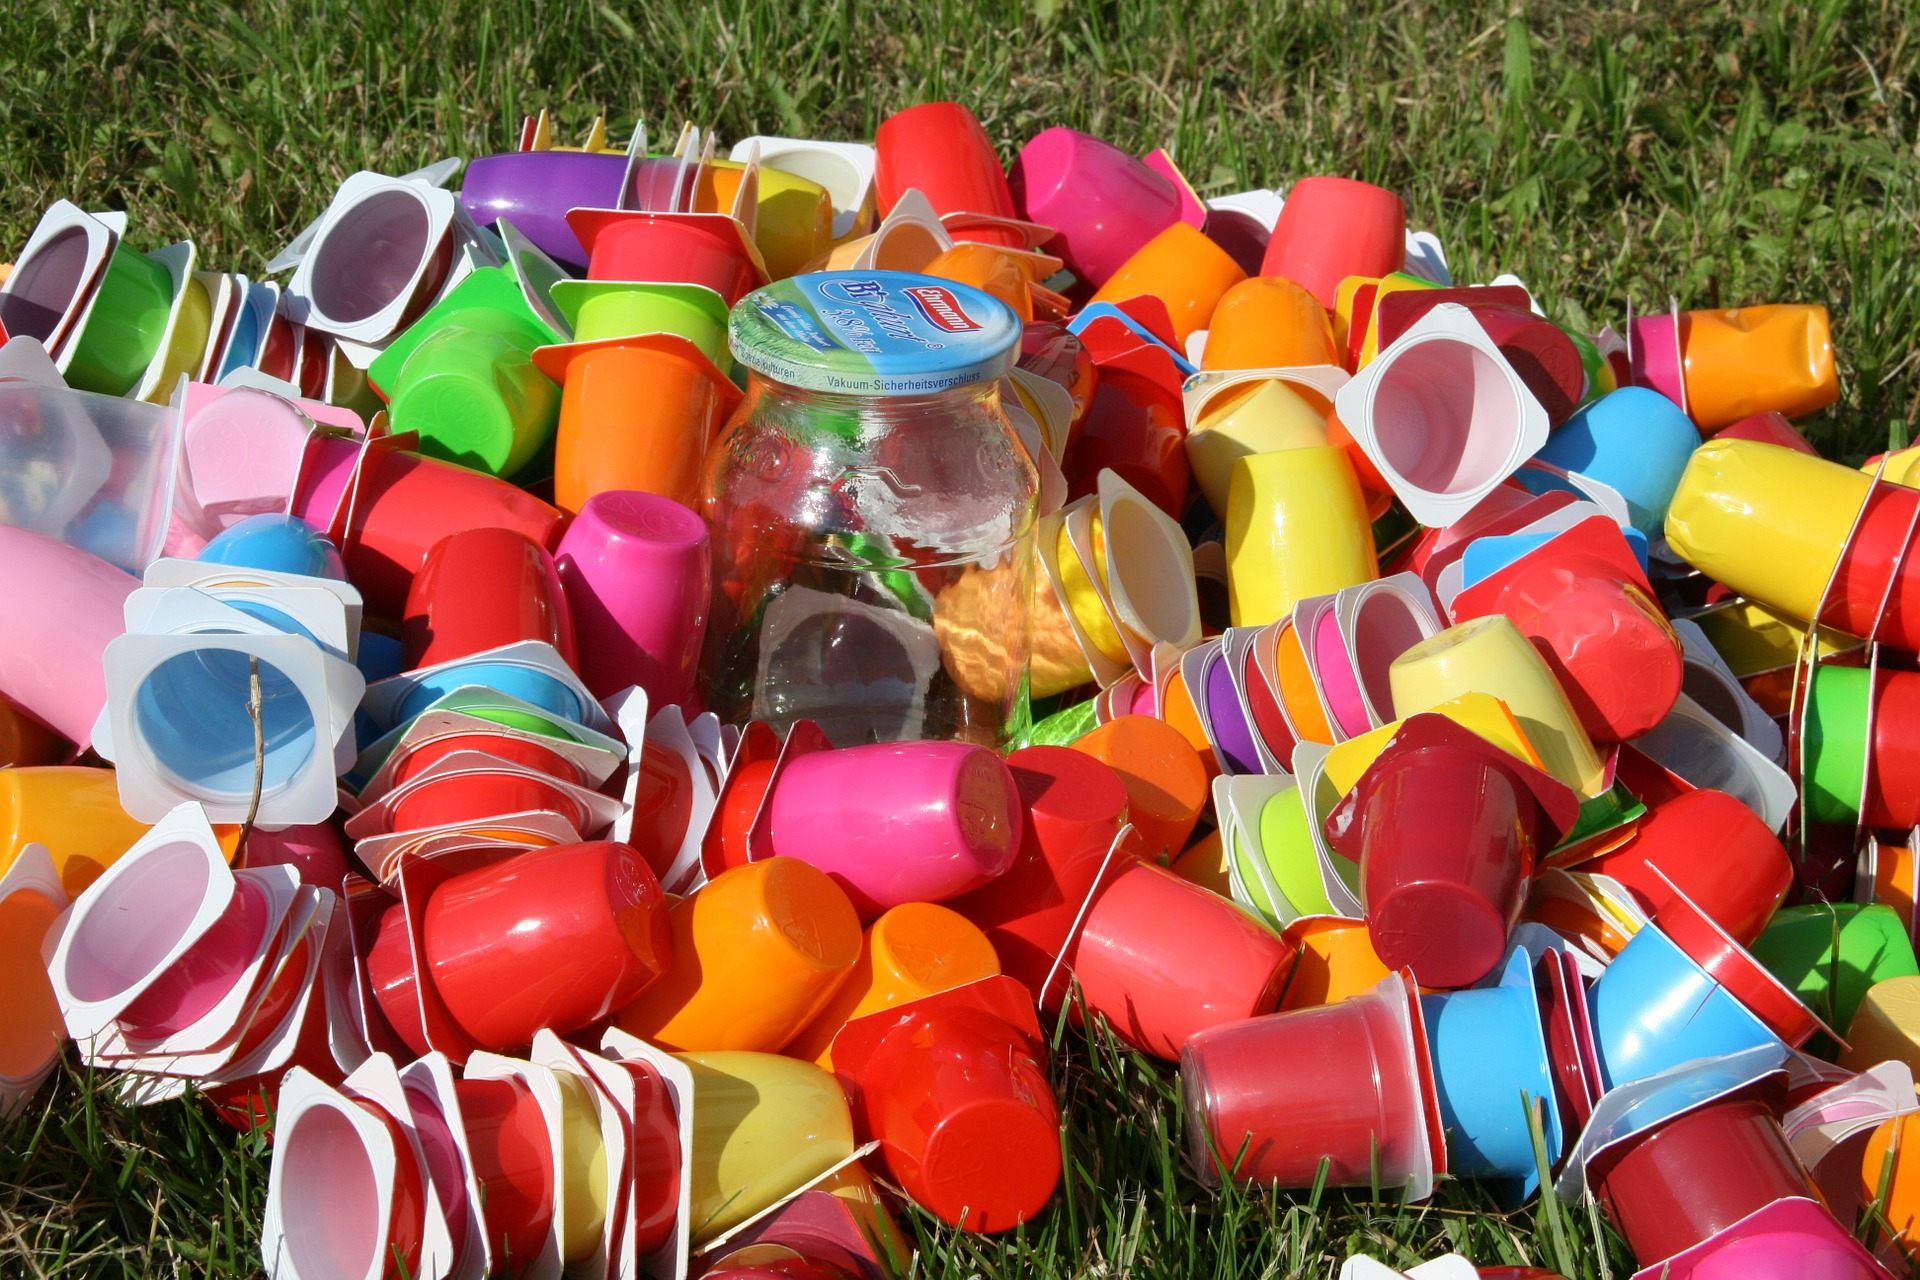 Single use plastic is an example of materials that need to be minimised in everyday life